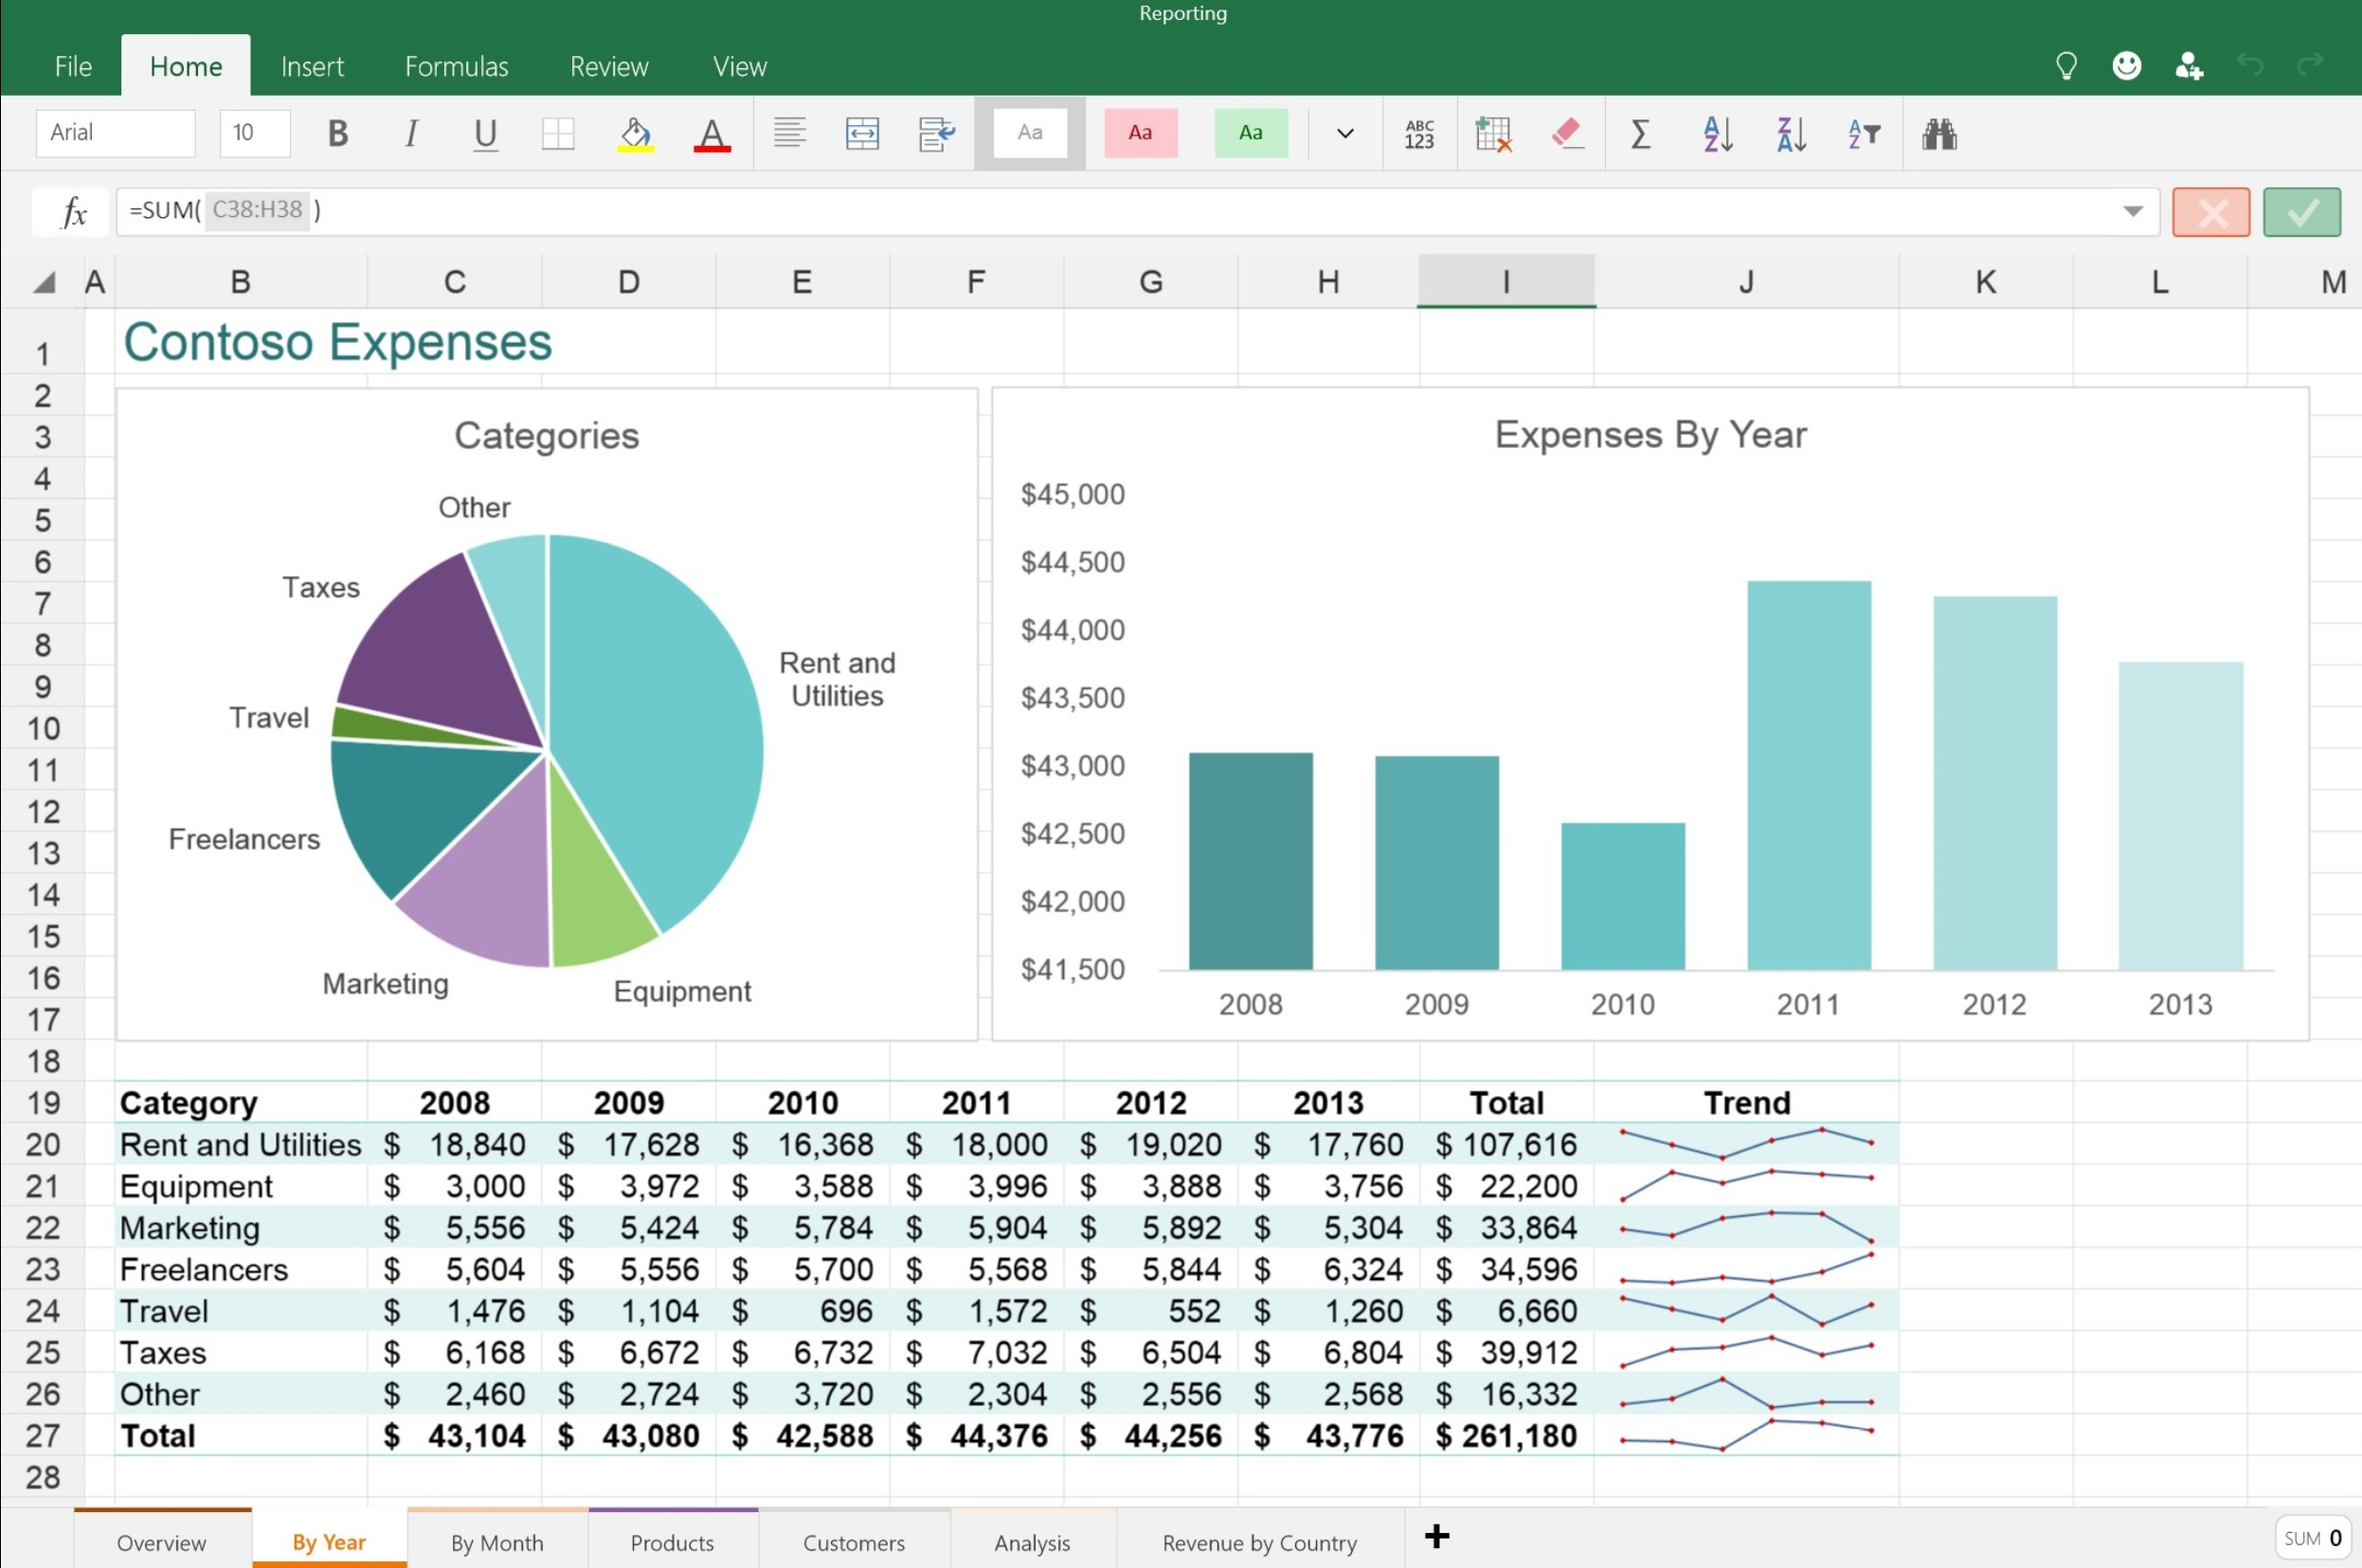 Ediblewildsus  Winsome Features Available In The New Word Excel And Powerpoint Apps For  With Engaging Excel Touch App  With Cool Excel  Chart Wizard Also Modern Business Statistics With Microsoft Excel In Addition How To Download Outlook Calendar To Excel And Unprotect Workbook Excel Vba As Well As Repeat Rows In Excel  Additionally Recover Corrupted Excel File Free Software From Mspowerusercom With Ediblewildsus  Engaging Features Available In The New Word Excel And Powerpoint Apps For  With Cool Excel Touch App  And Winsome Excel  Chart Wizard Also Modern Business Statistics With Microsoft Excel In Addition How To Download Outlook Calendar To Excel From Mspowerusercom